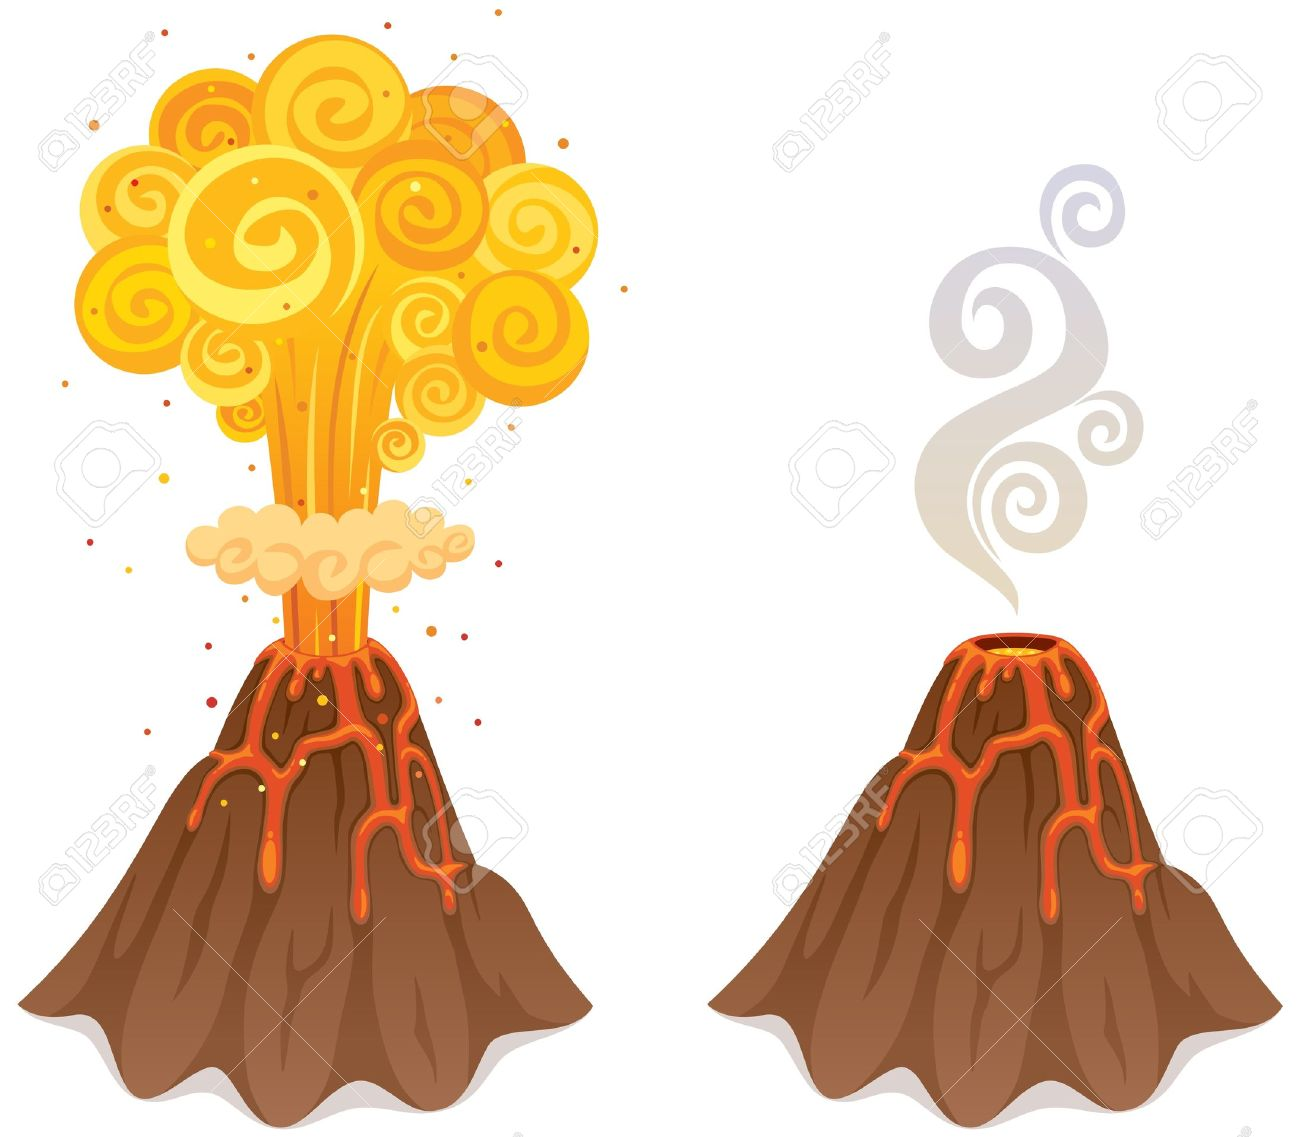 Clipart Volcano Images & Stock Pictures. Royalty Free Clipart ...